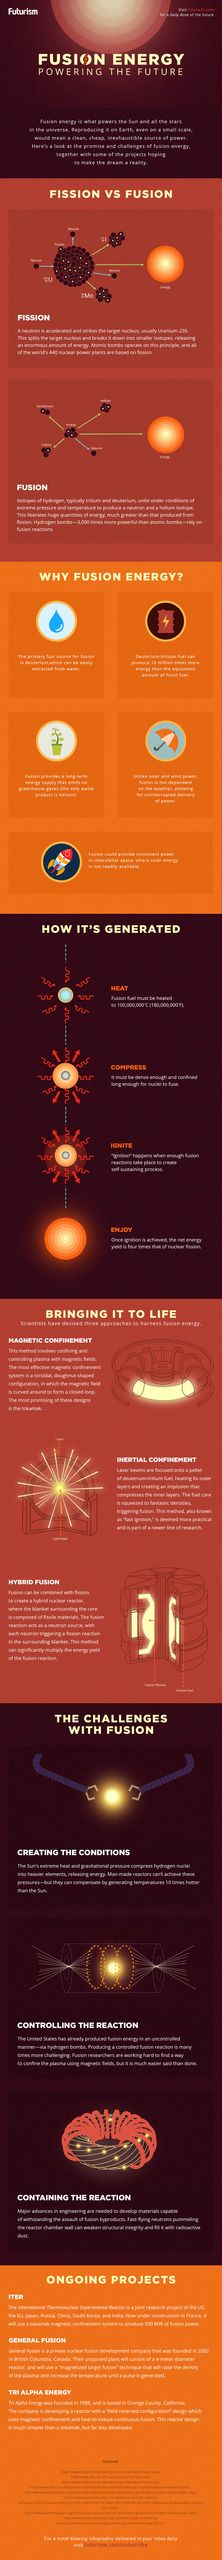 Fusion Power could provide clean, cheap, inexhaustible energy to billions. Unfortunately, it's incredibly difficult to harness and control.  Here's everything you need to know about energy's biggest moonshot.  http://futurism.com/images/fusion-energy-a-practical-guide-infographic/?utm_campaign=coschedule&utm_source=pinterest&utm_medium=Futurism&utm_content=Fusion%20Energy%3A%20A%20Practical%20Guide%20%5BInfographic%5D